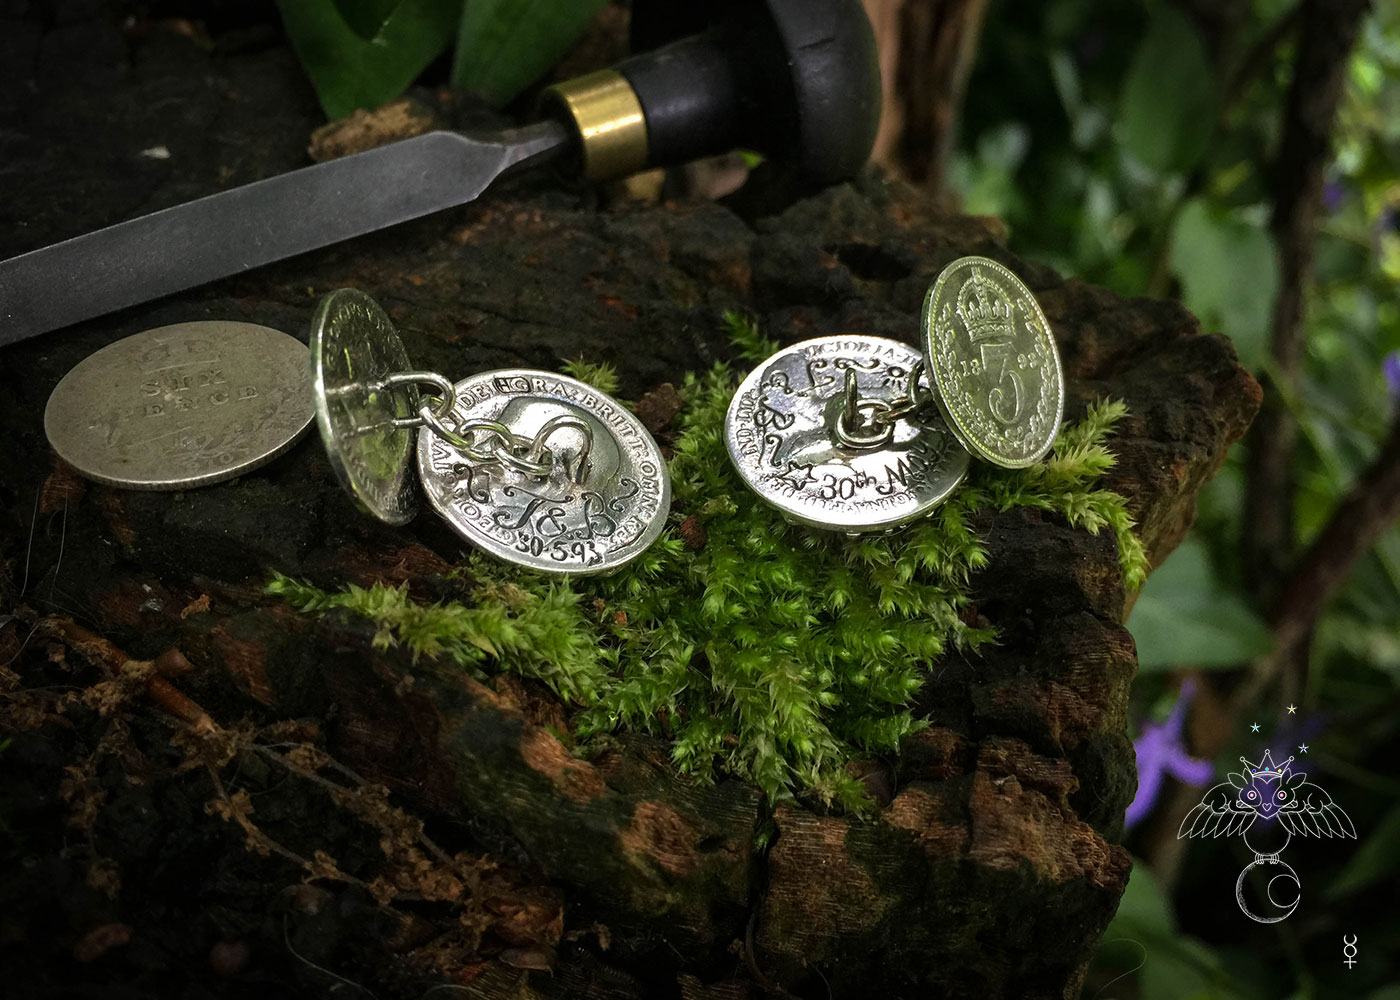 Hairy Growler Jewellery - Silver Tree collection. Tree cufflinks handcrafted and recycled from sterling silver shillings and threepence coins